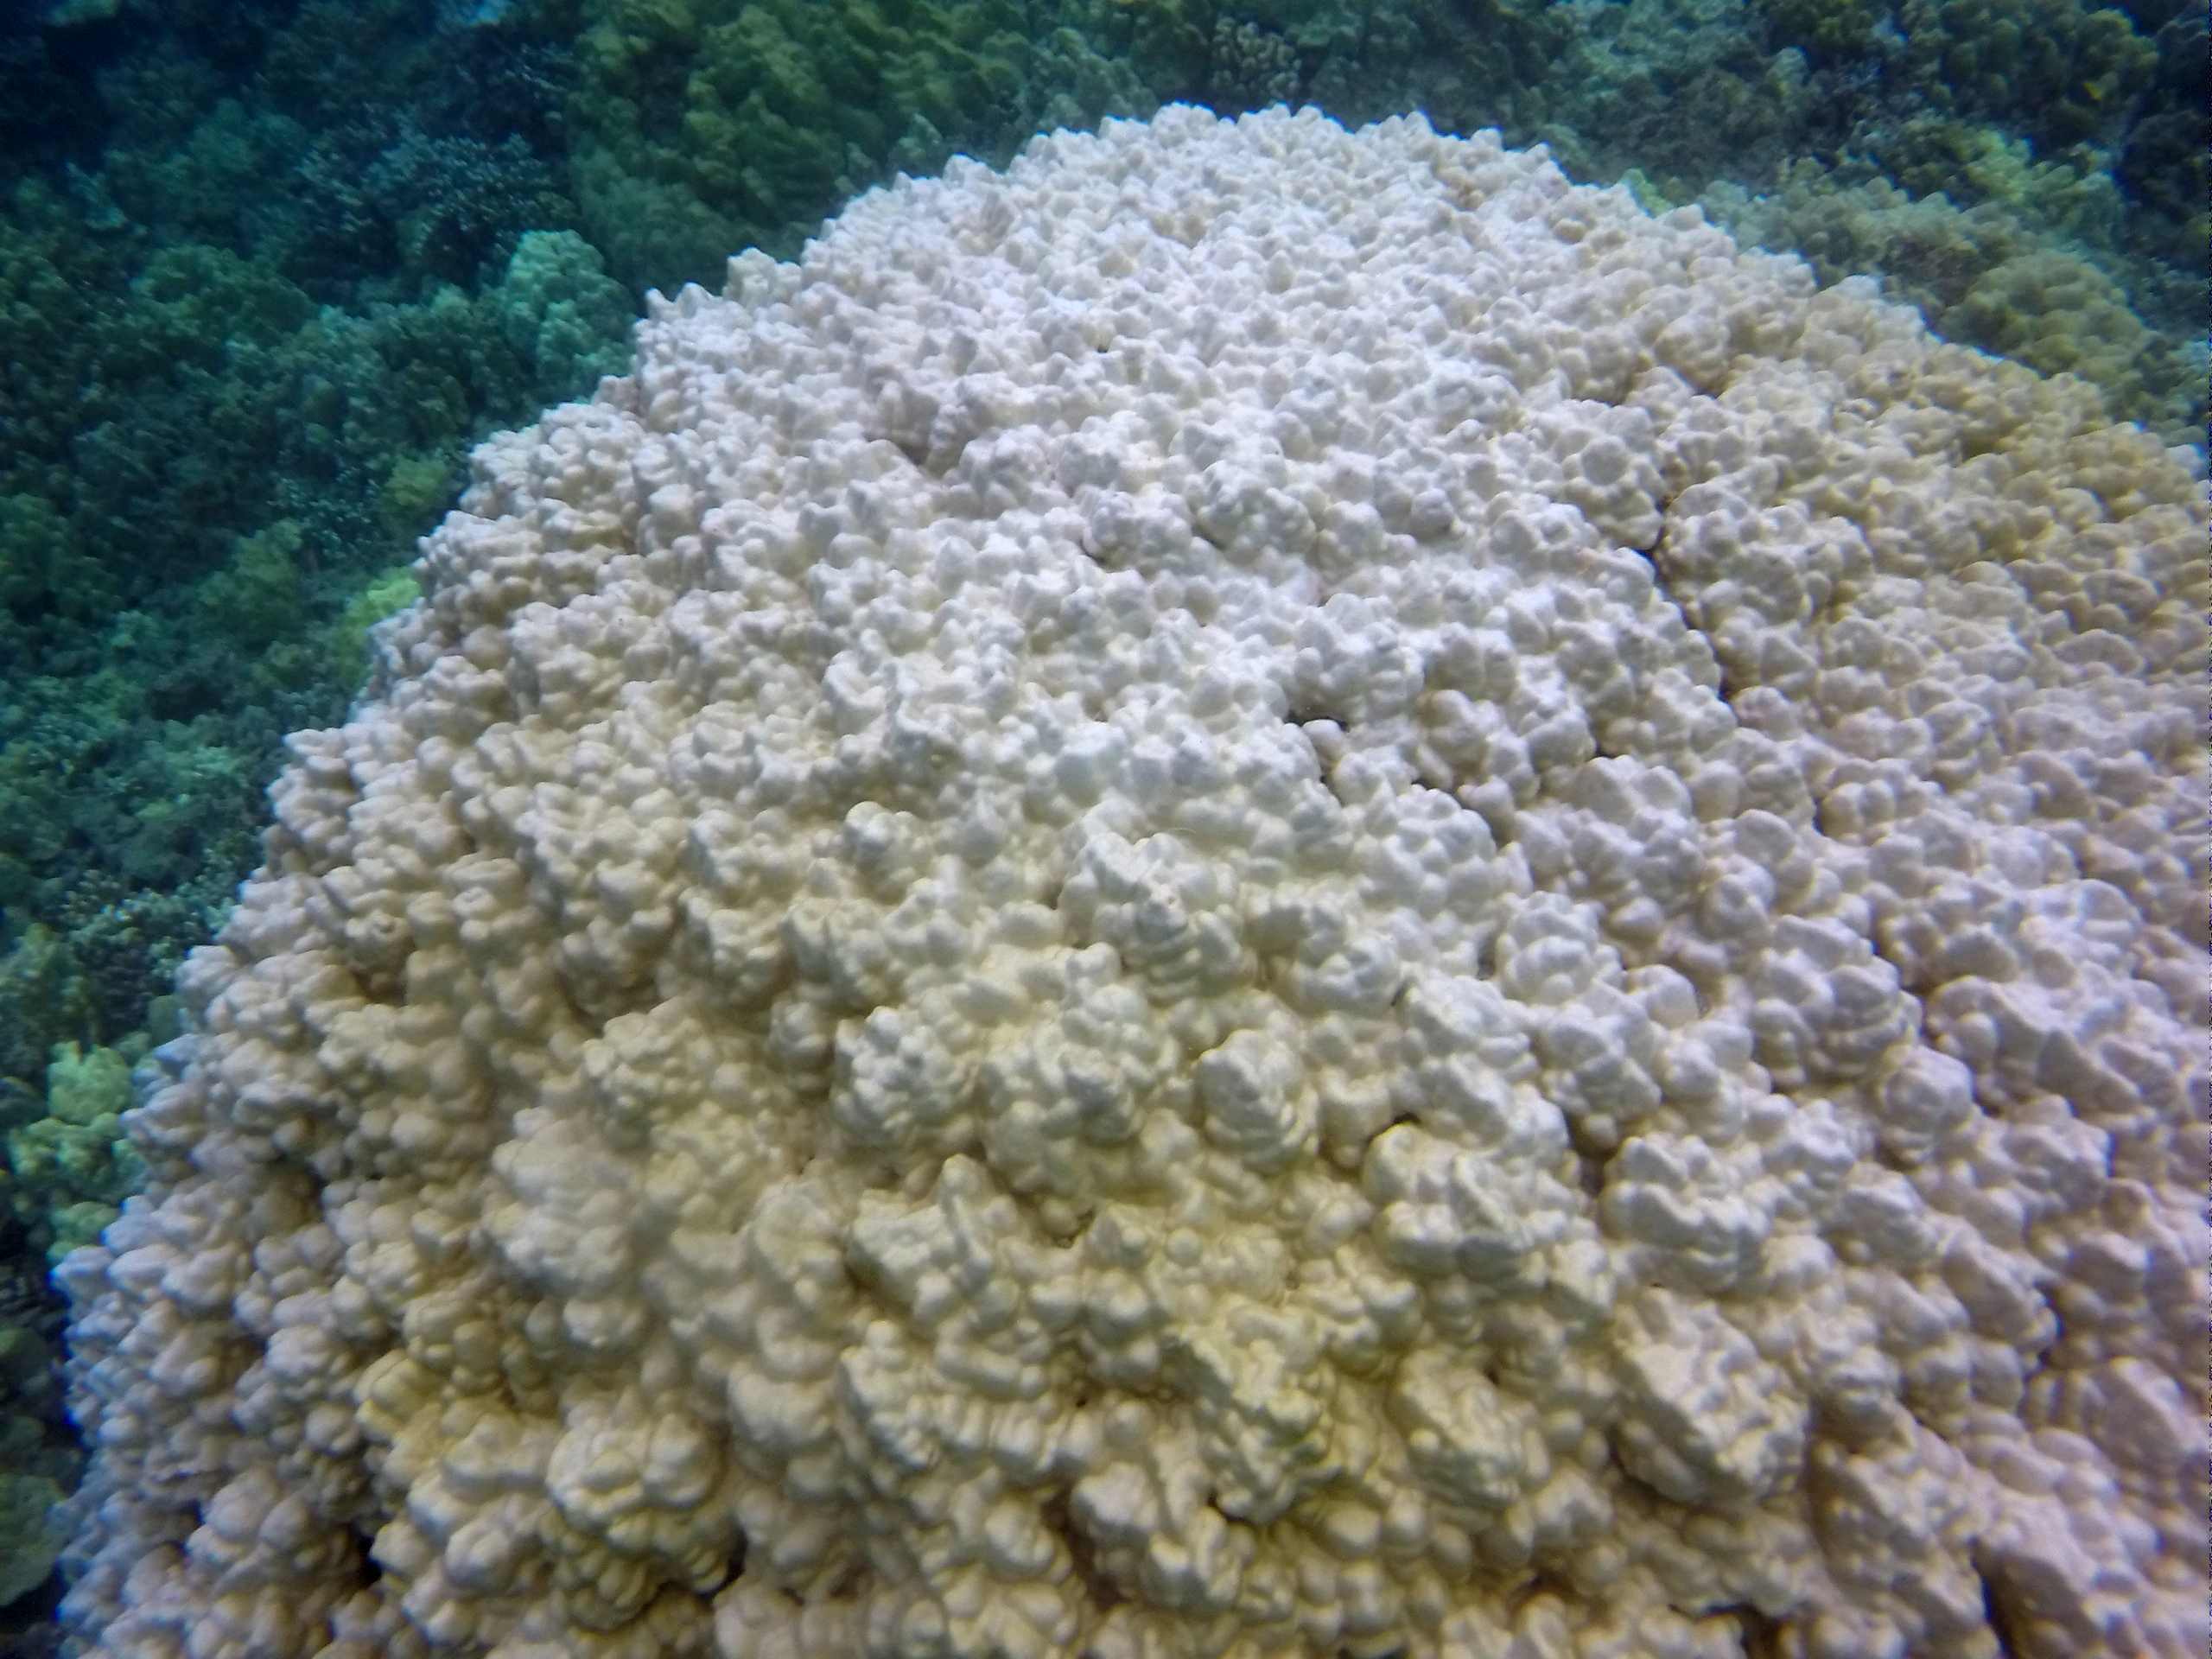 coral bleaching Coral bleaching events can cause severe and widespread ecological damage with serious consequences for reef-based communities and industrieswhile the causes of coral bleaching are beyond the direct influence of local management, reef managers have important roles to play before, during and after bleaching events.